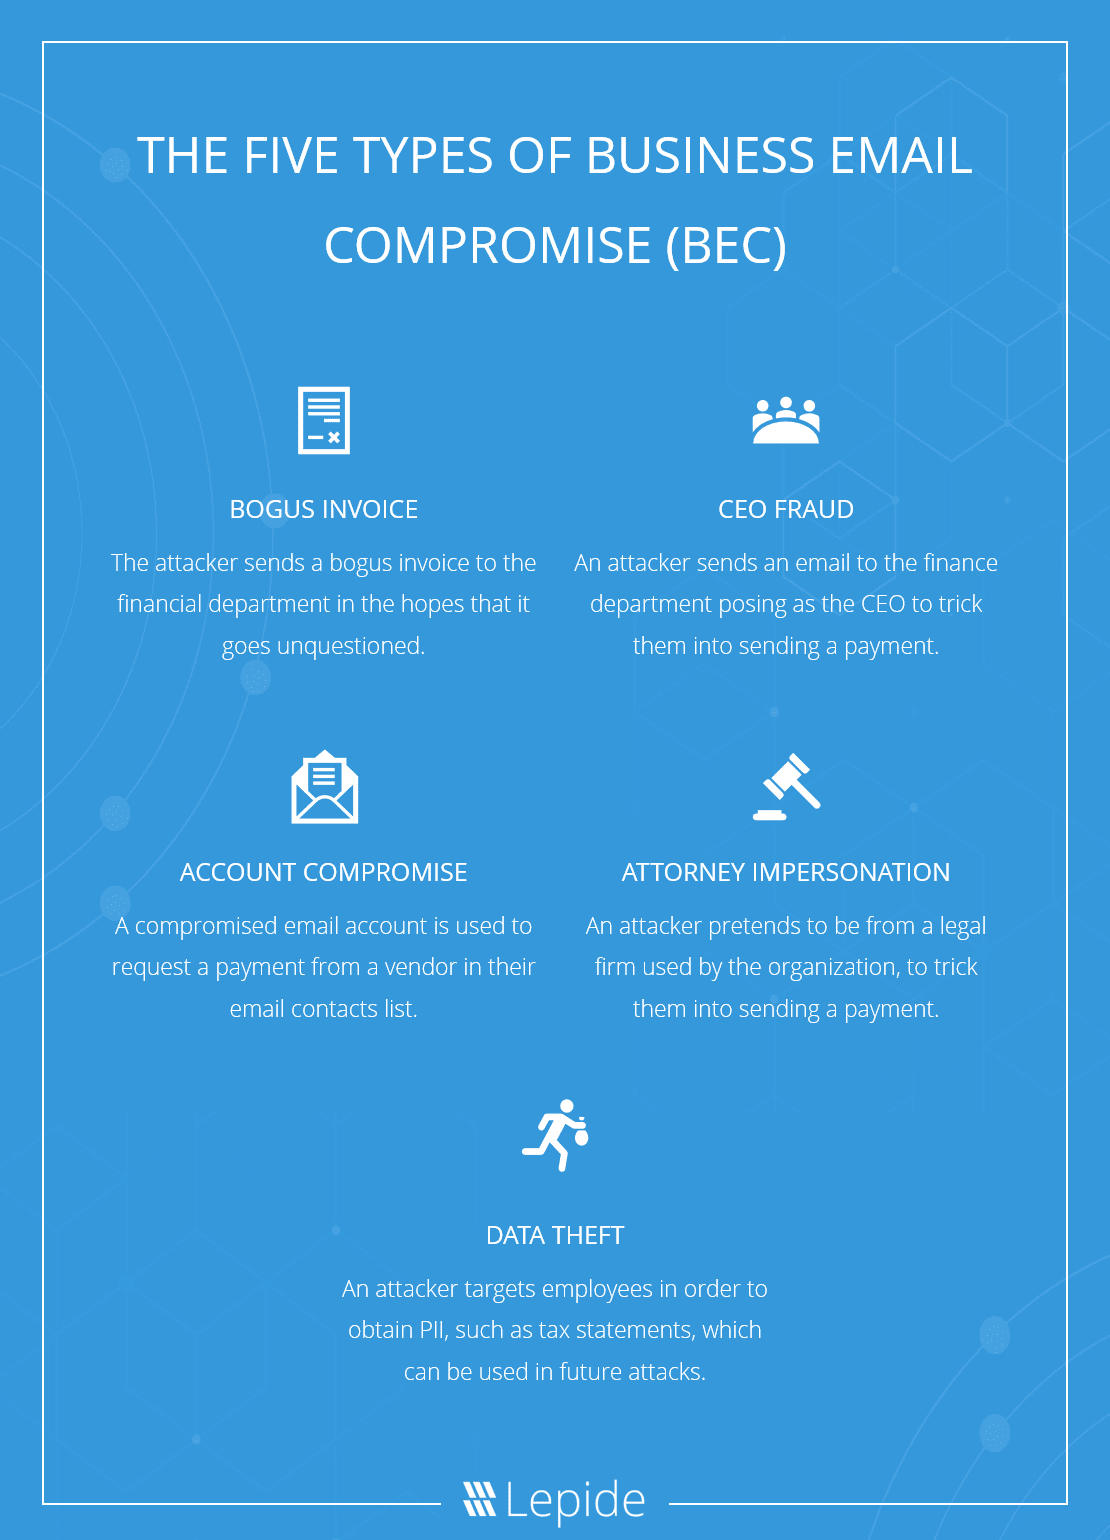 The Five Types of Business Email Compromise (BEC)